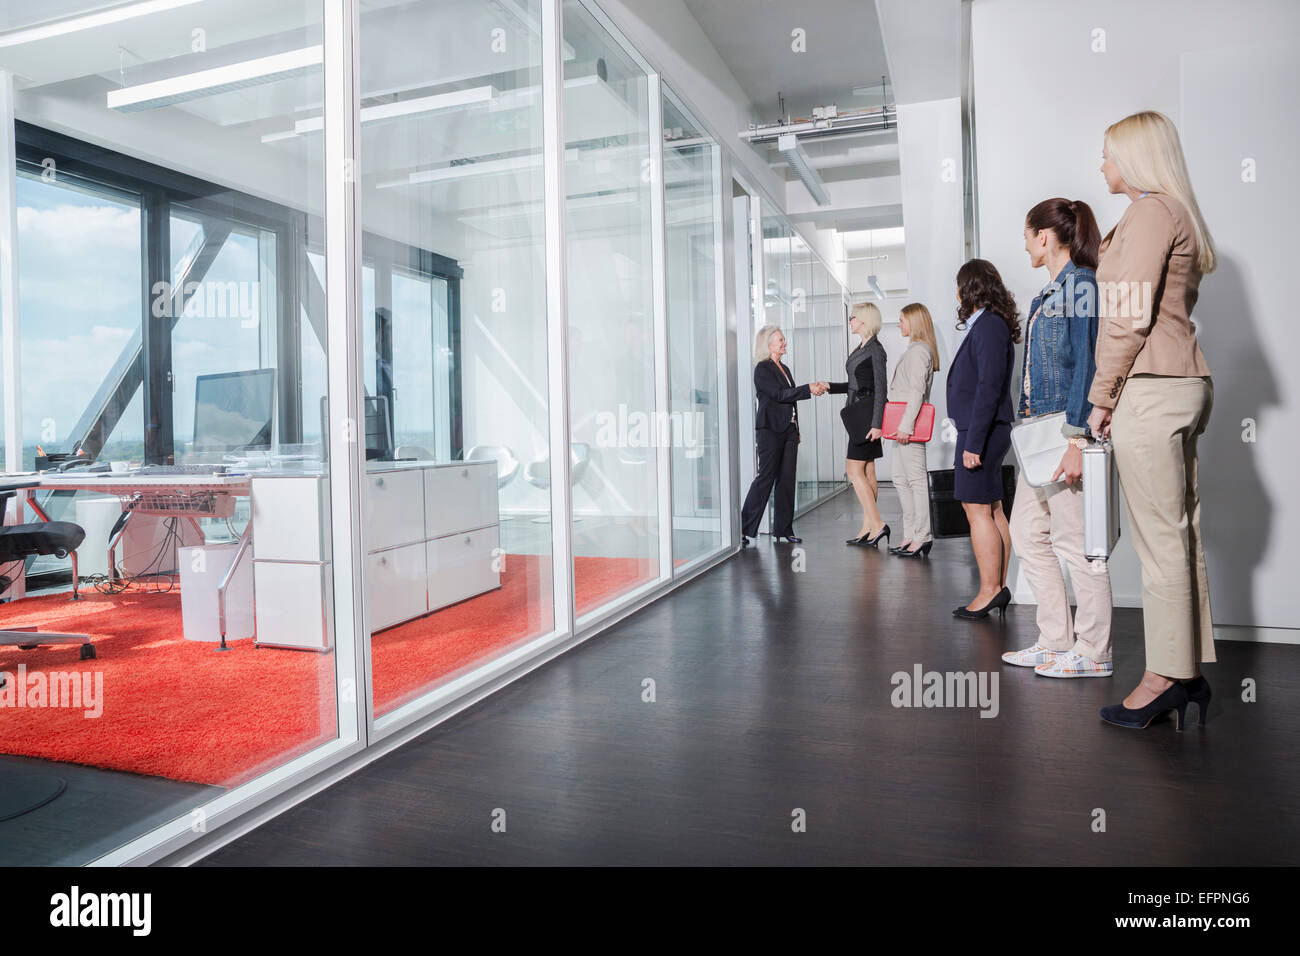 Women queueing outside interview room Stock Photo